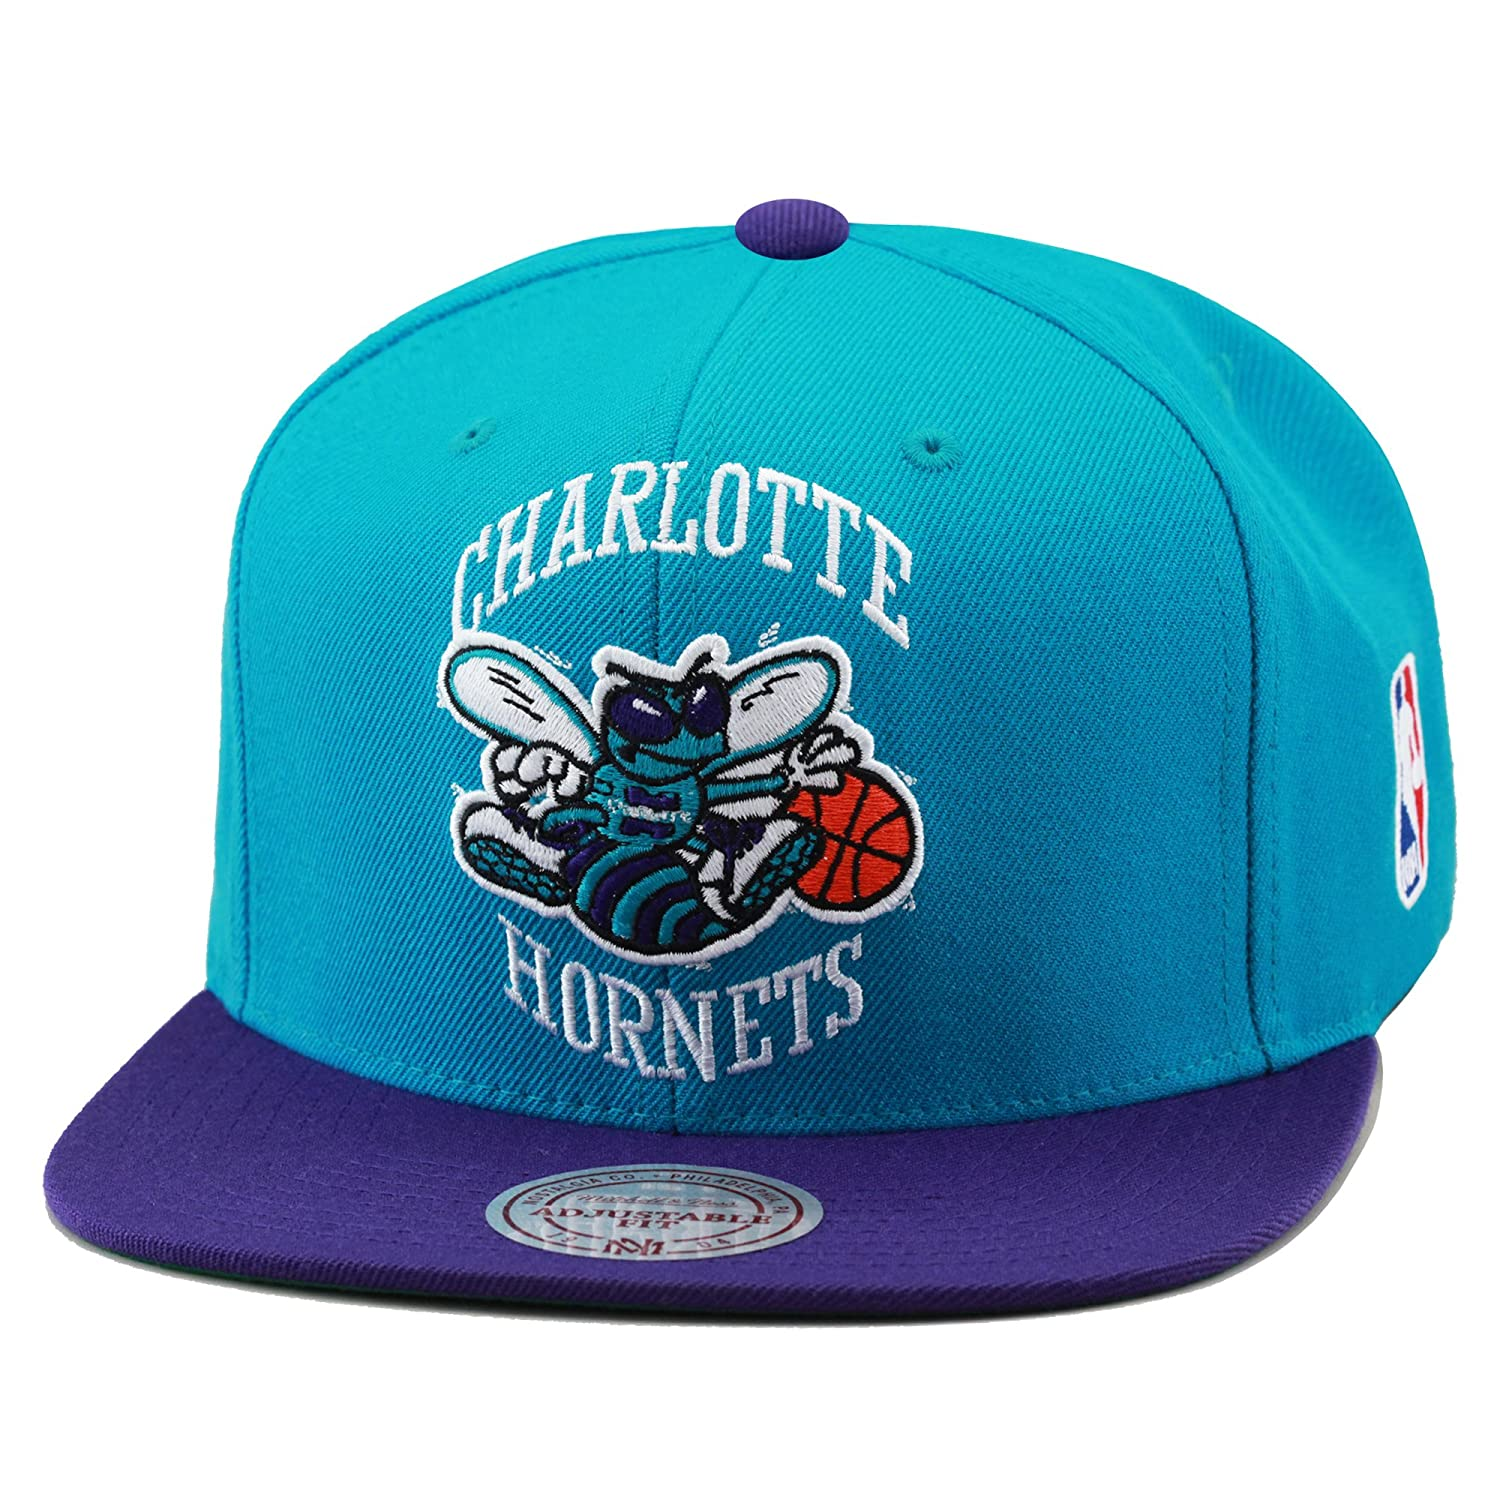 Amazon.com  NBA Mitchell   Ness Charlotte Hornets XL Logo Two Tone Snapback  Hat - Creole Blue Dark Purple  Clothing 9d5ca4f9083